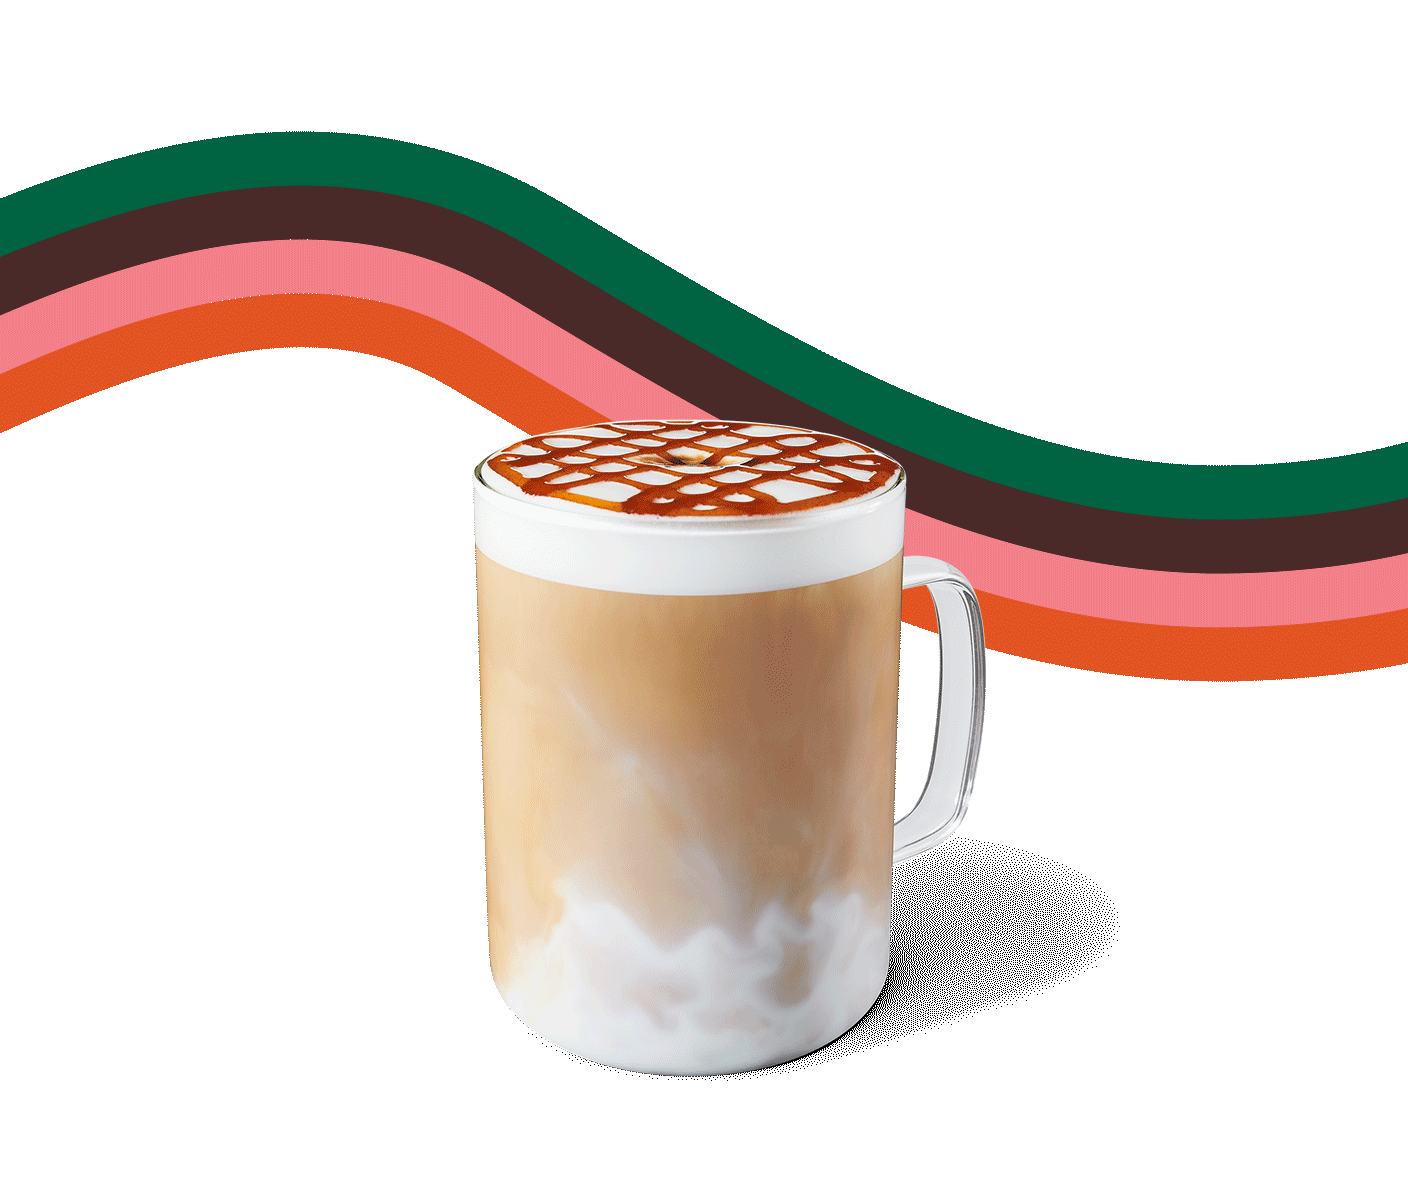 A hot macchiato topped with spiced apple drizzle sits atop a beige background featuring a graphic swirl.